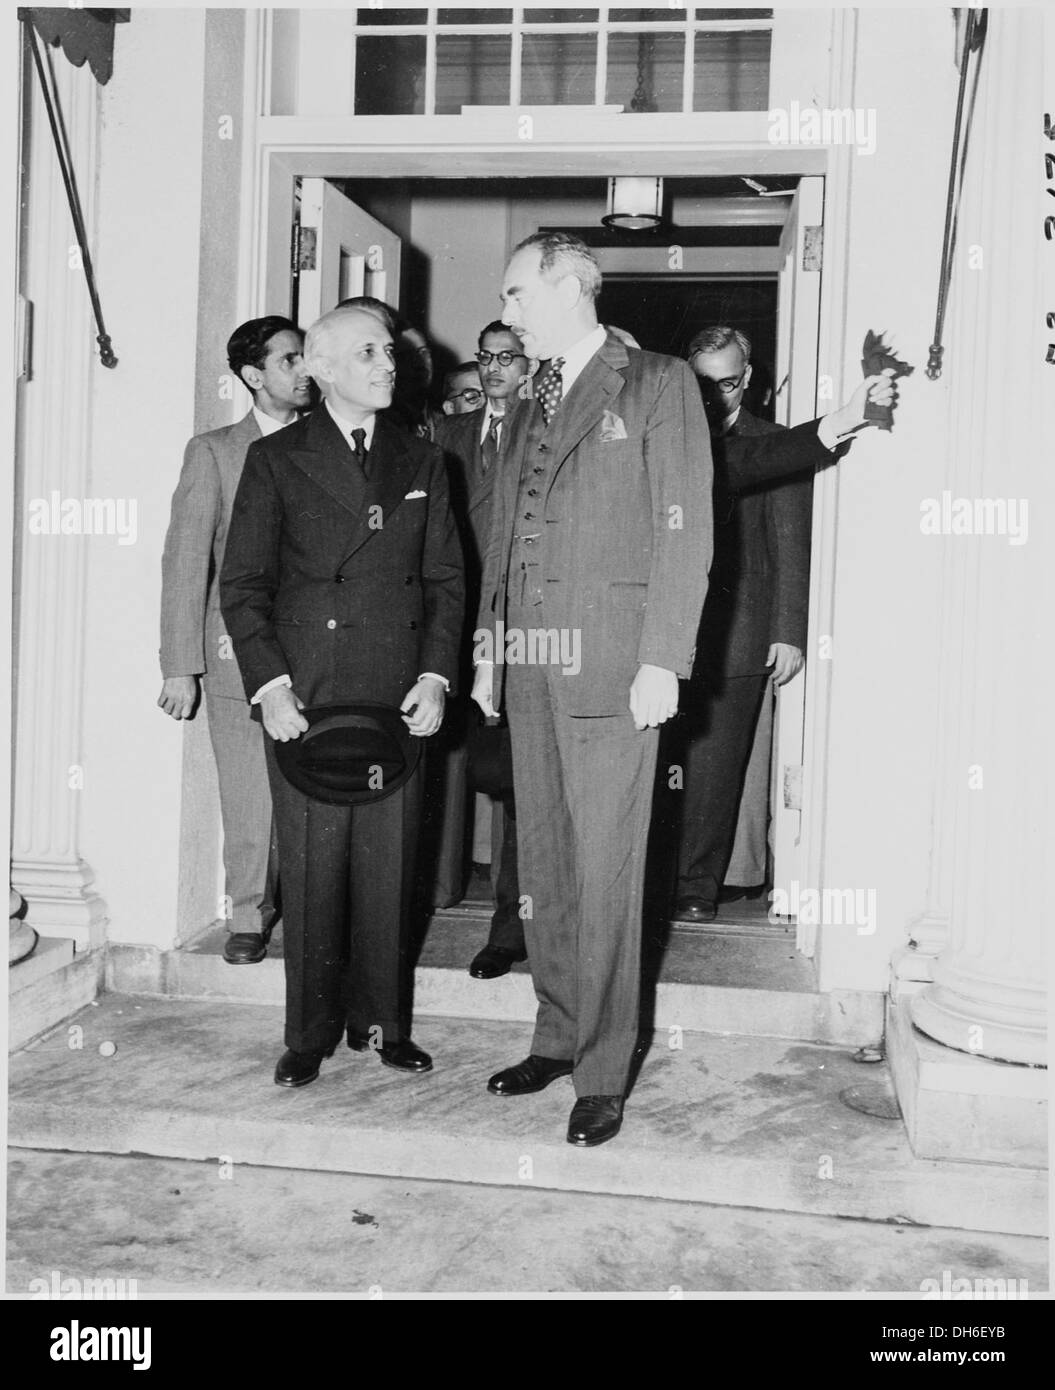 Photograph of Prime Minister Jawaharlal Nehru of India with Secretary of State Dean Acheson. 200157 - Stock Image